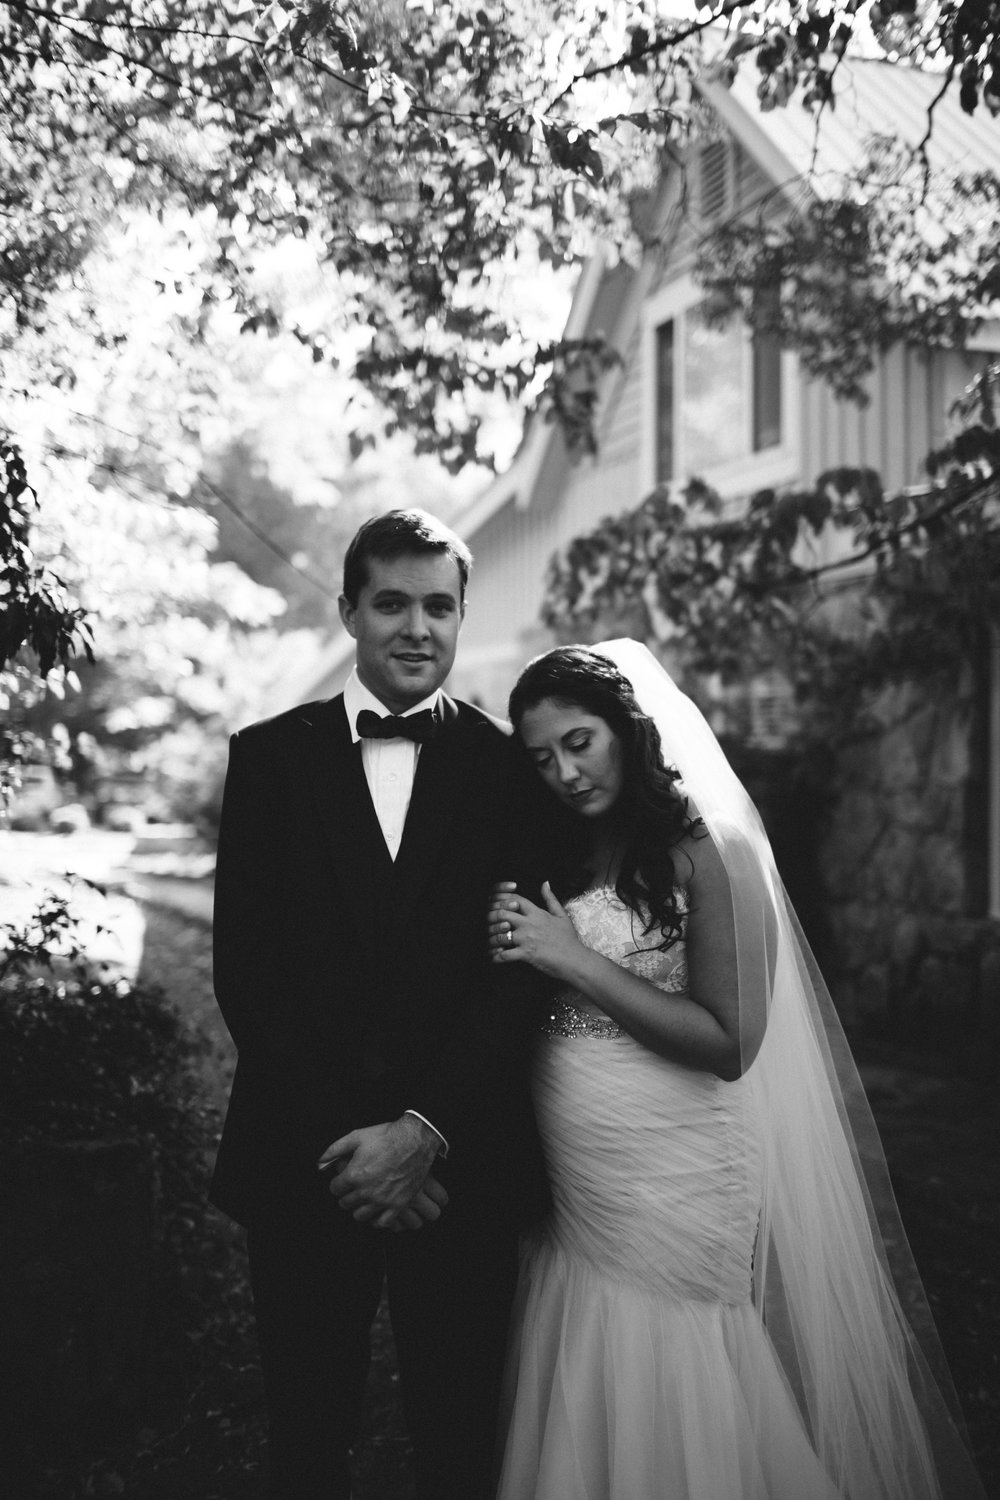 Dreamtownco.com_blog_Zach&Lauren_Wedding_0069.jpg